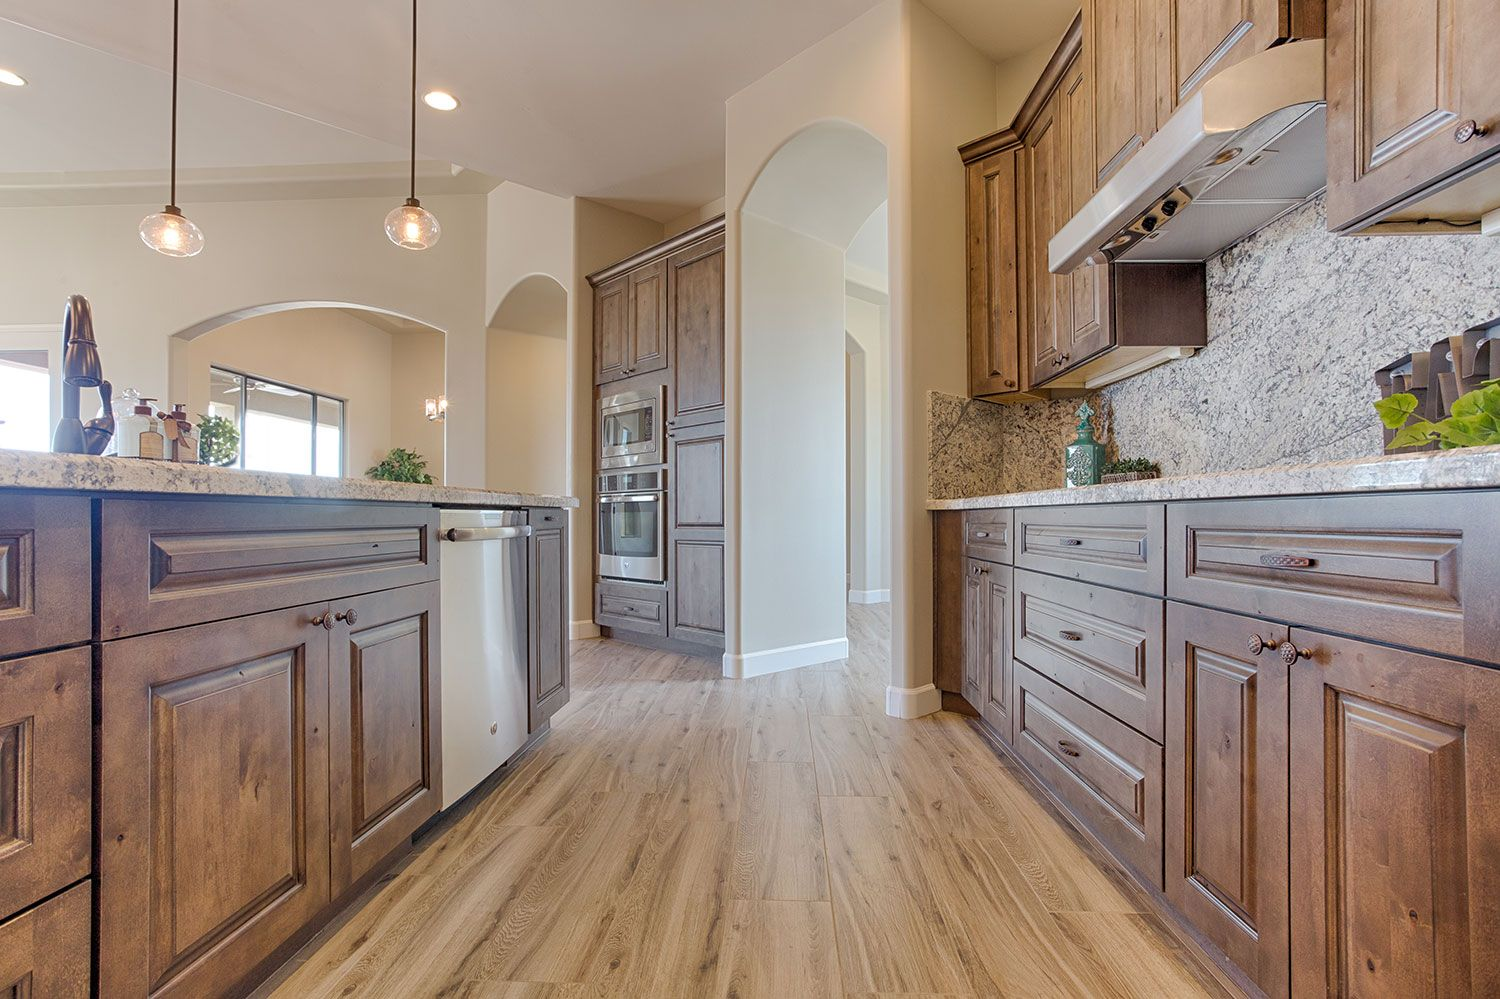 ash kitchen cabinets islans tahoe from value series sollid kitchens in